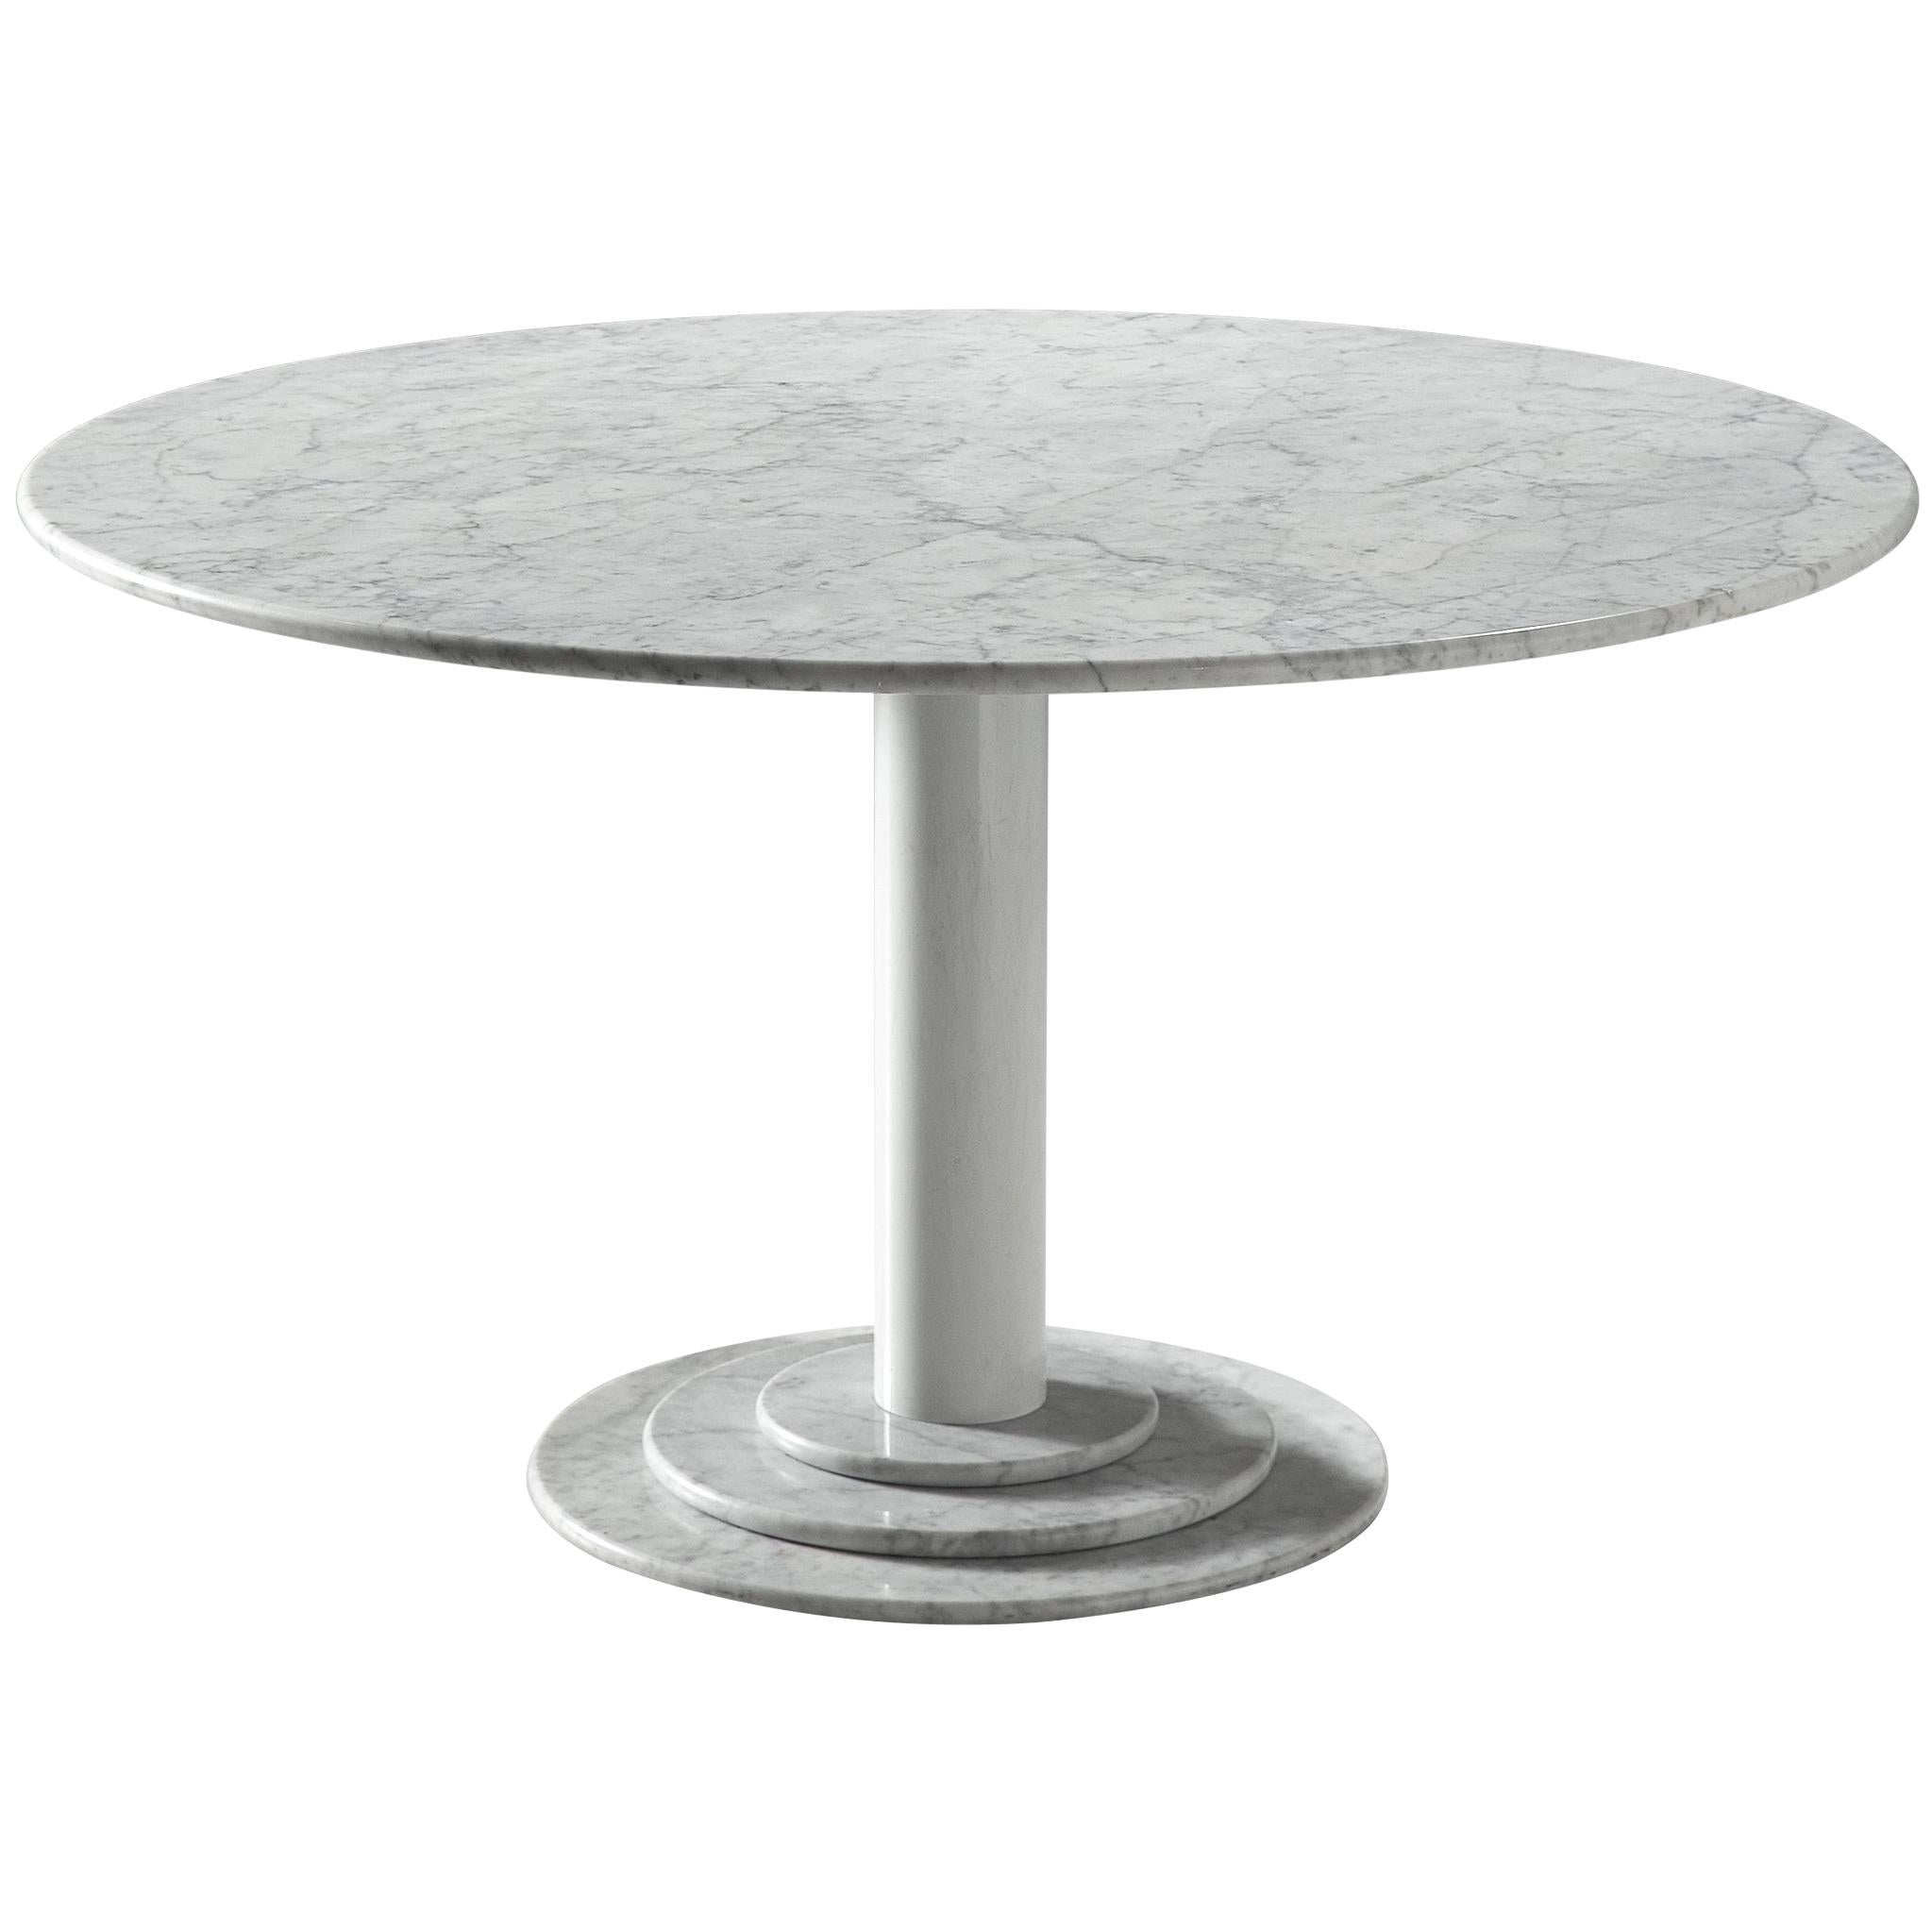 Italian Dining Table in White Marble